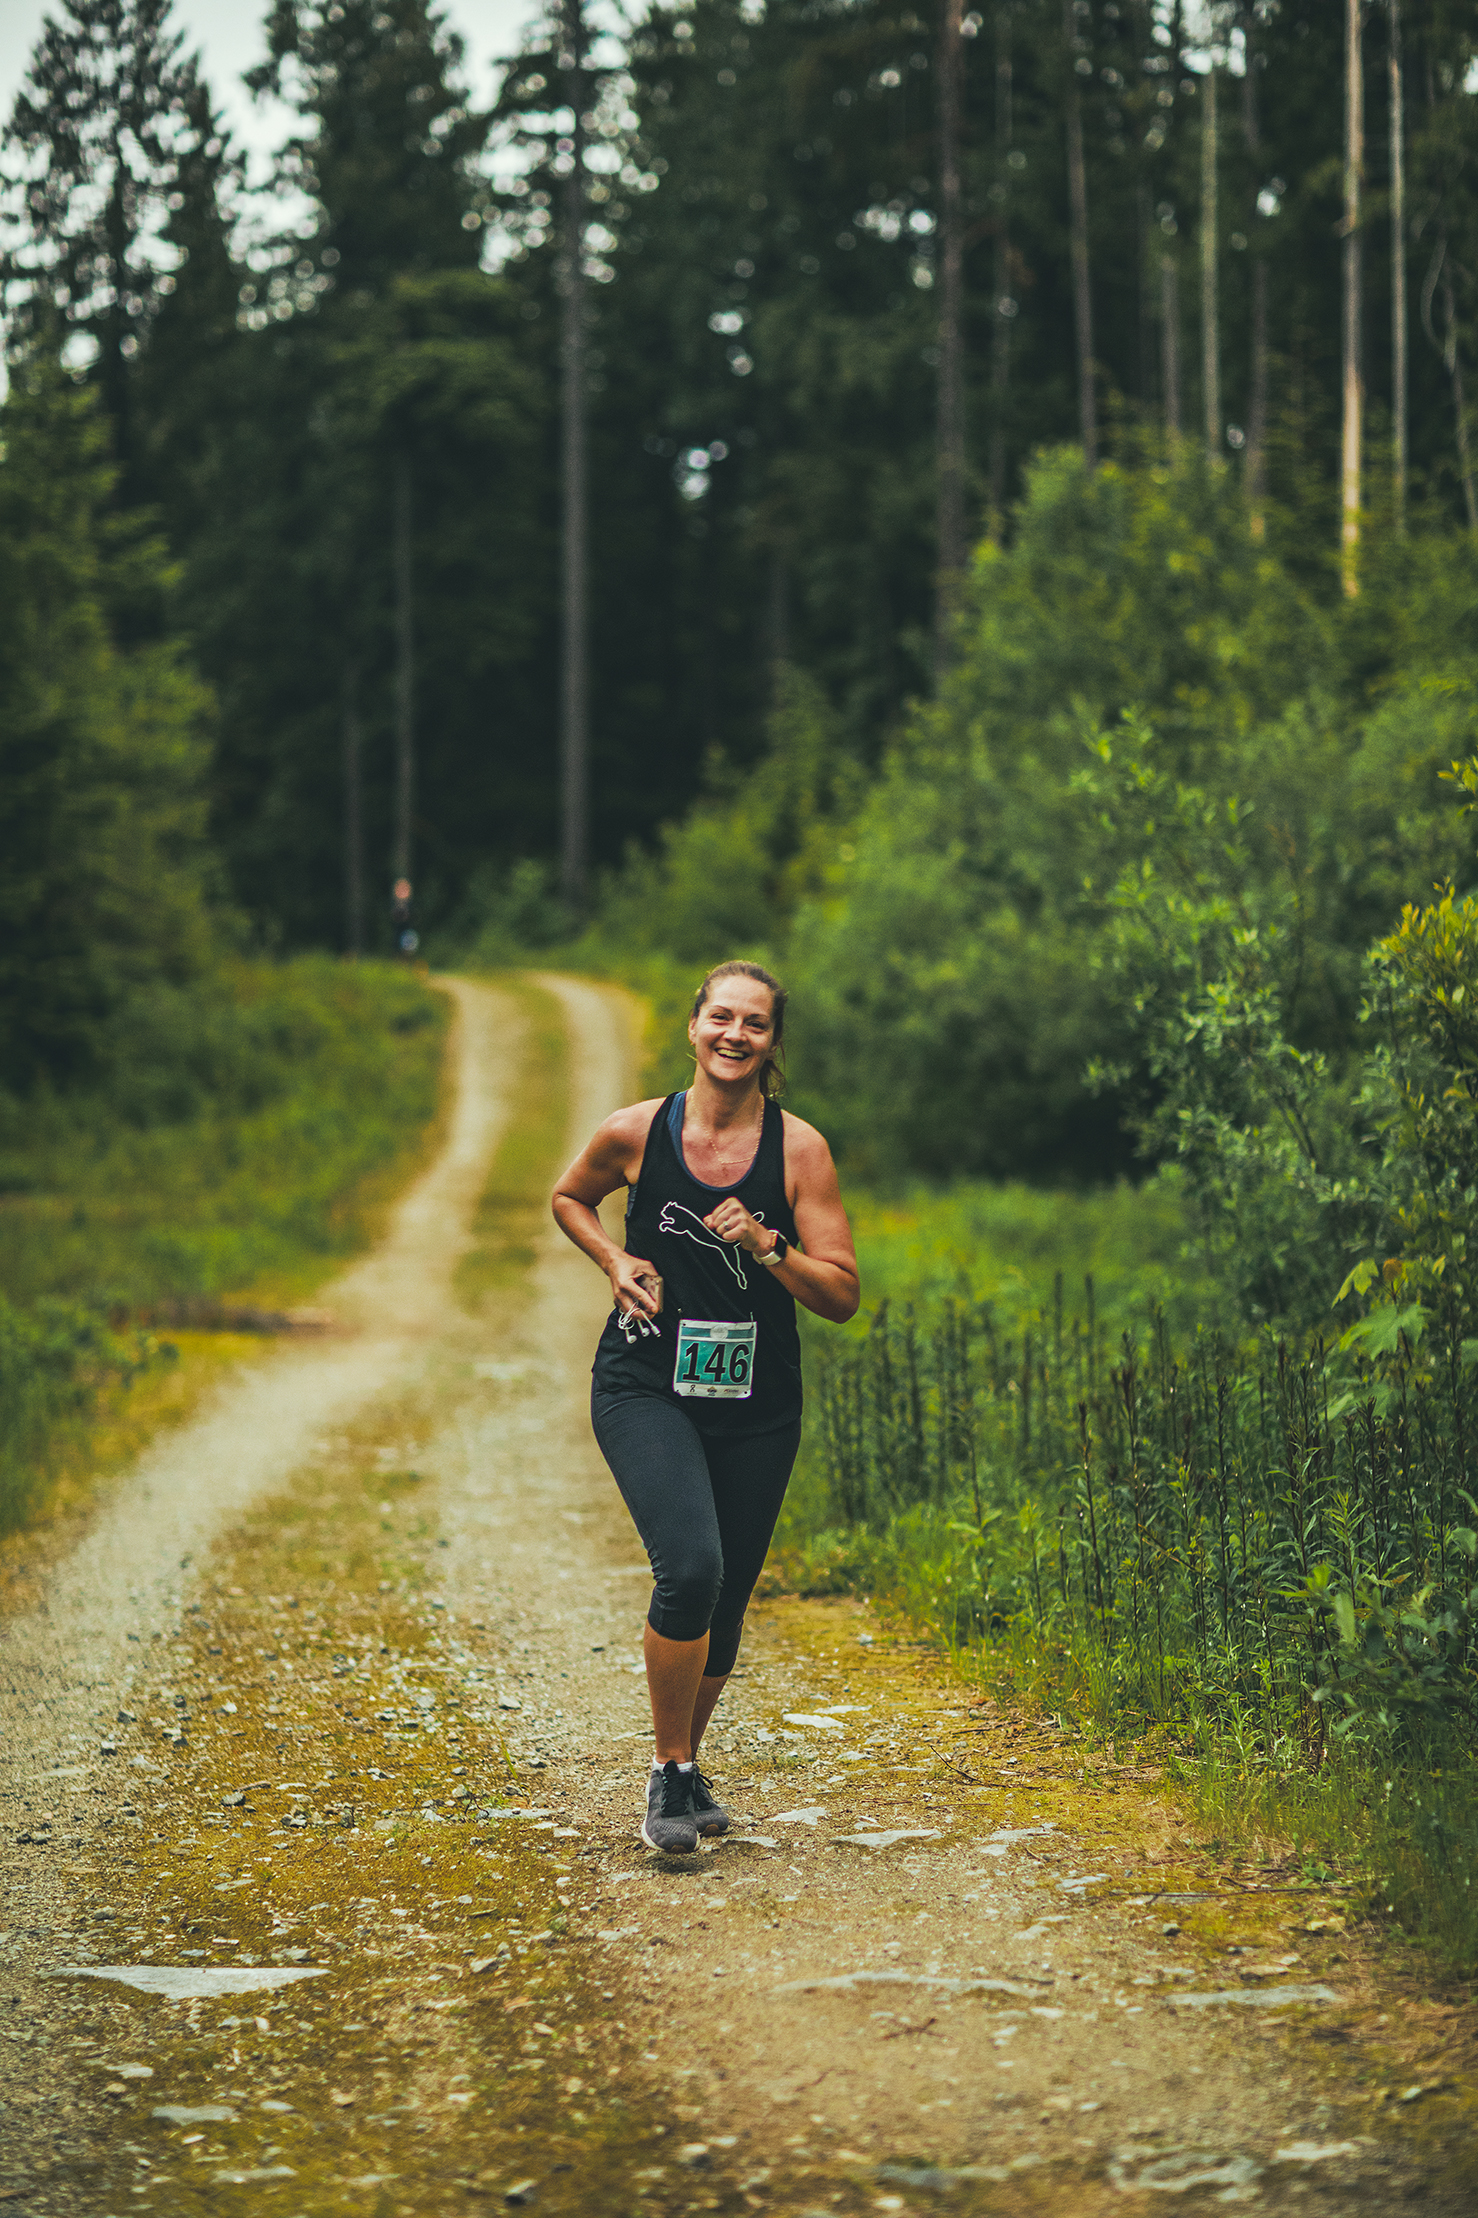 Fraser Valley Trail Races - Bear Mountain - IMG_1944 by Brice Ferre Studio - Vancouver Portrait Adventure and Athlete Photographer.jpg